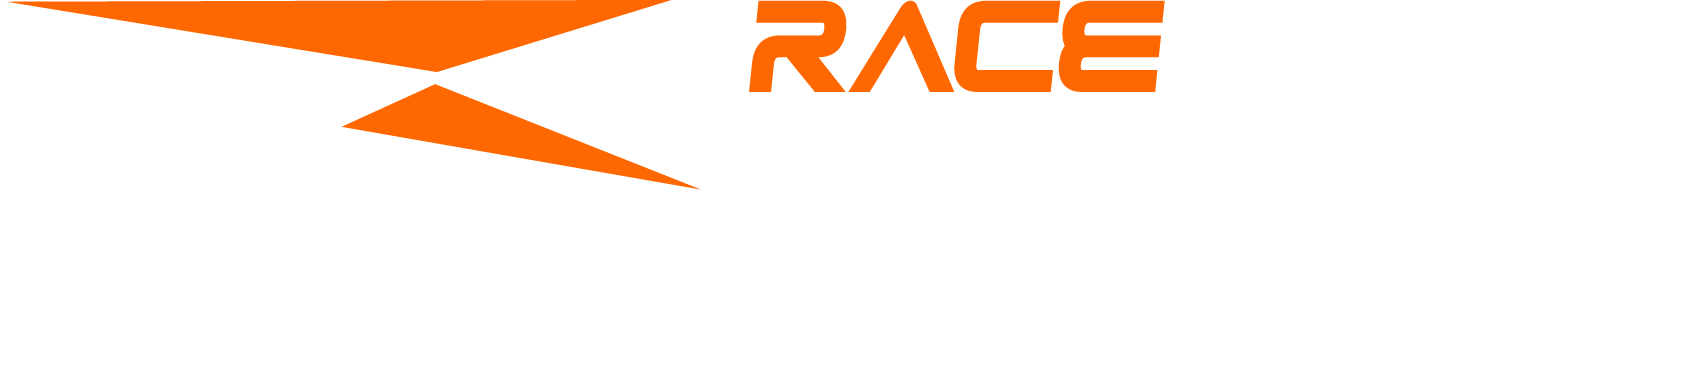 Racetrack Supercross Site and Logo White.png